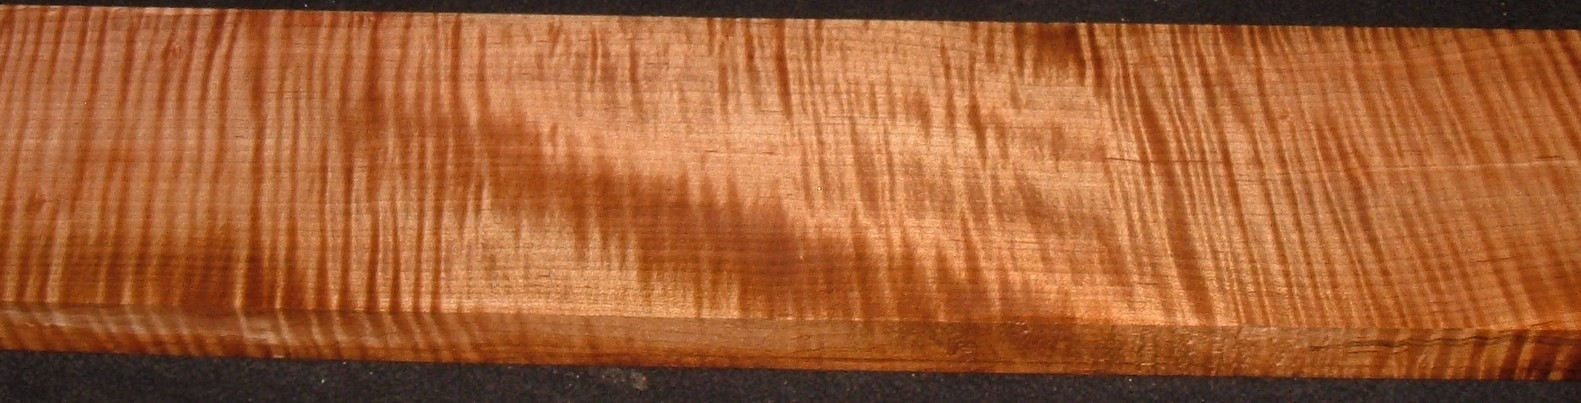 QRM2010-351JK, 1-3/16x5-1/4x47, Quartersawn Roasted Curly Maple